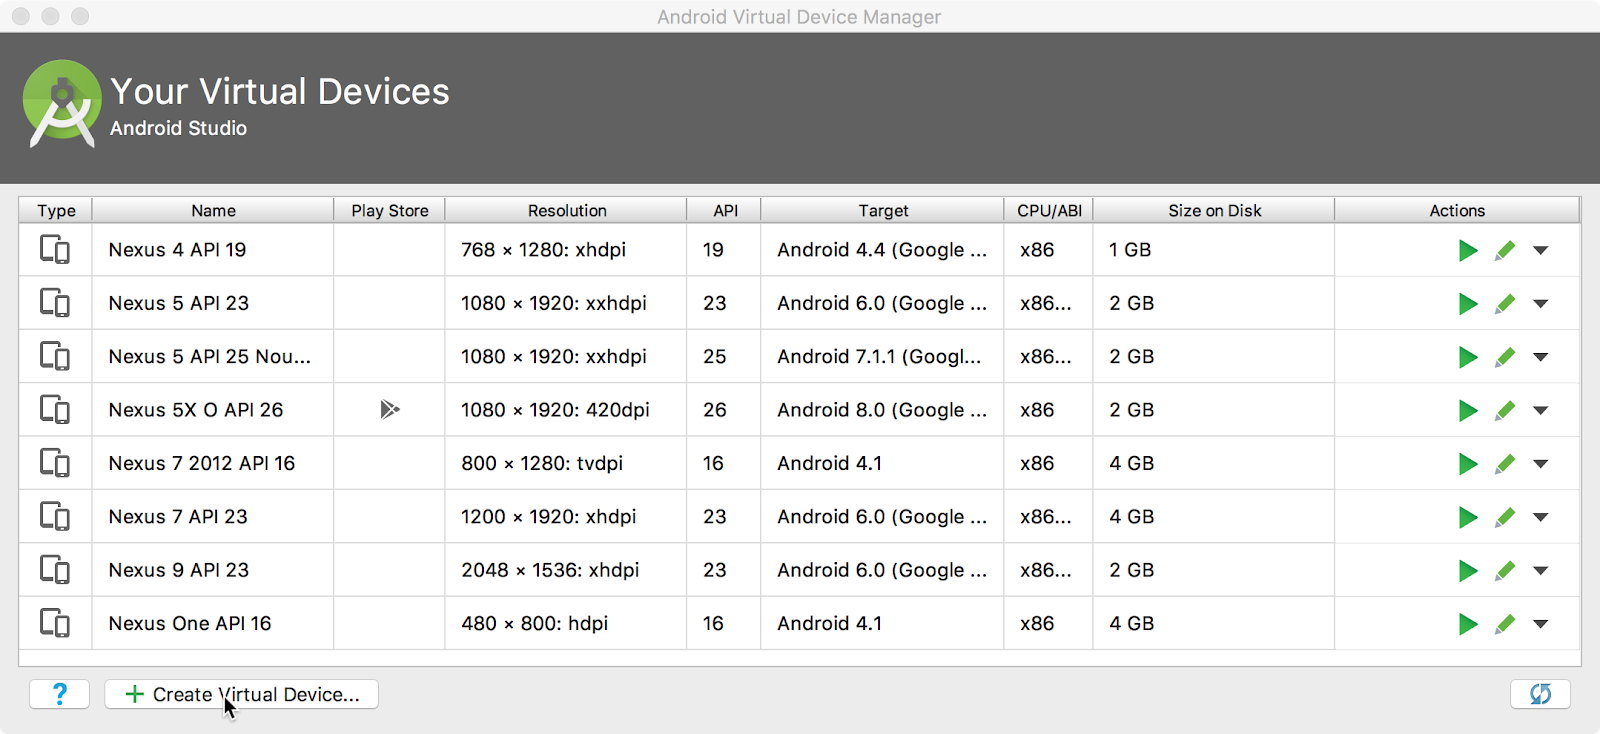 The Android Virtual Device (AVD) Manager showing a list of virtual devices already created